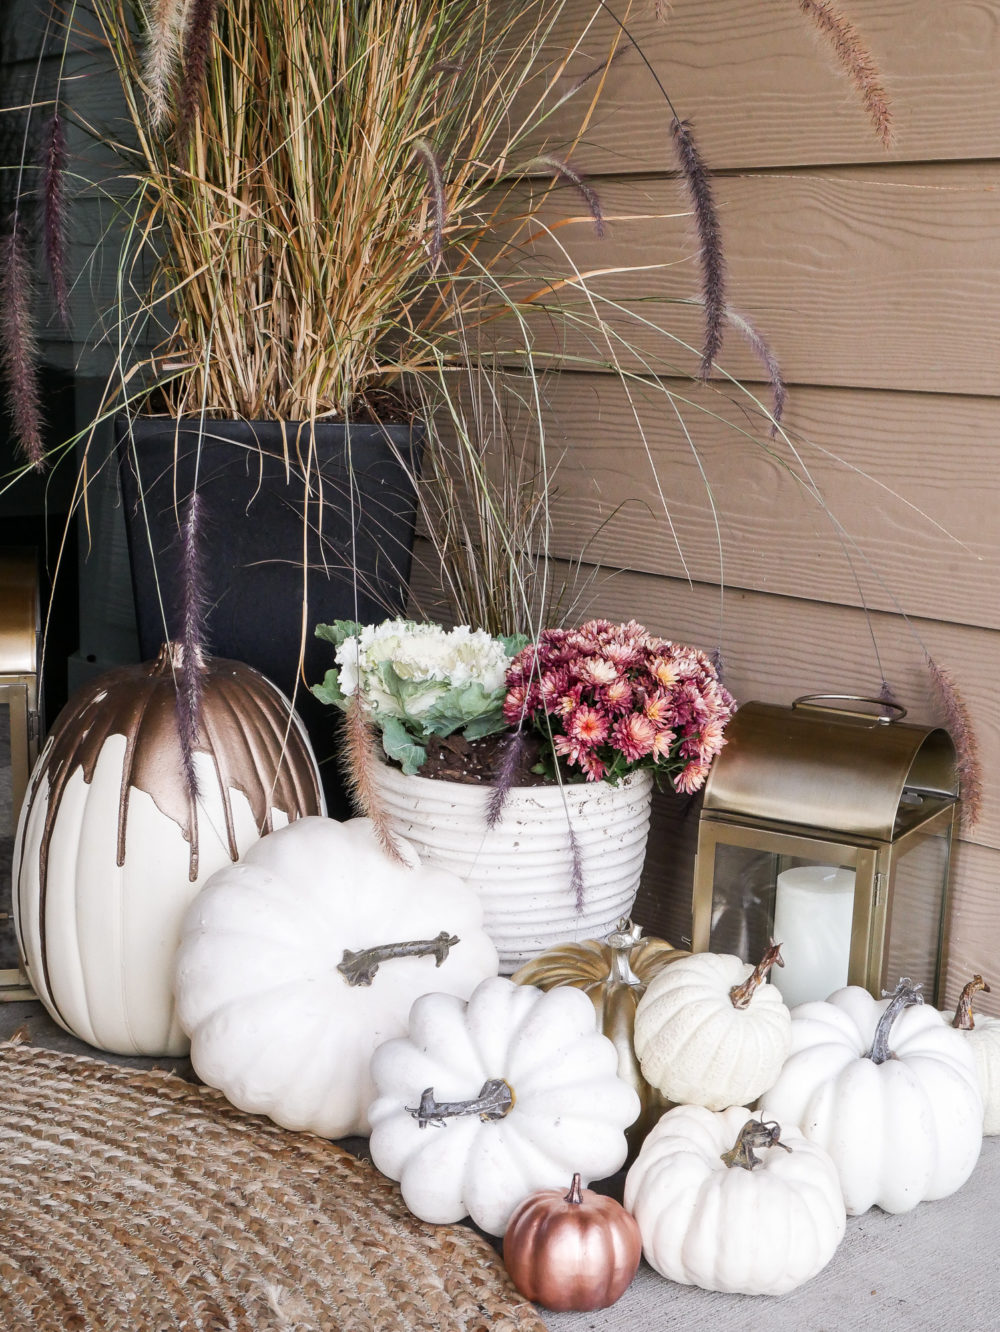 Elegant and classy fall porch featuring white pumpkins and gold lanterns. Those pops of rose gold make this feel so warm and inviting.